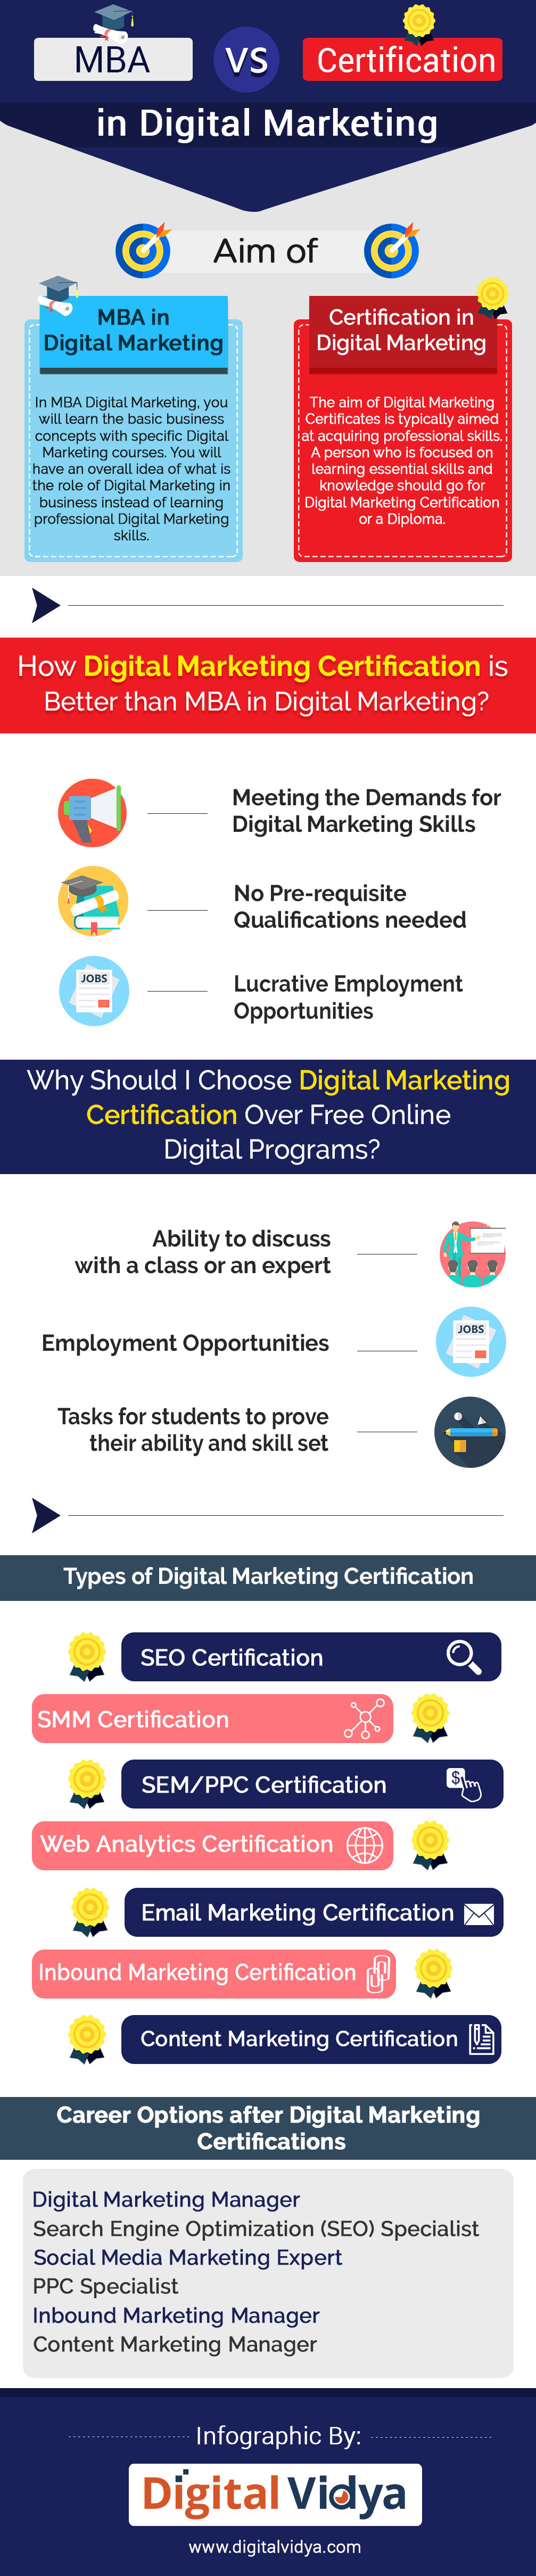 MBA-Vs-Certification-in-Digital-Marketing-Infographic-1.jpg